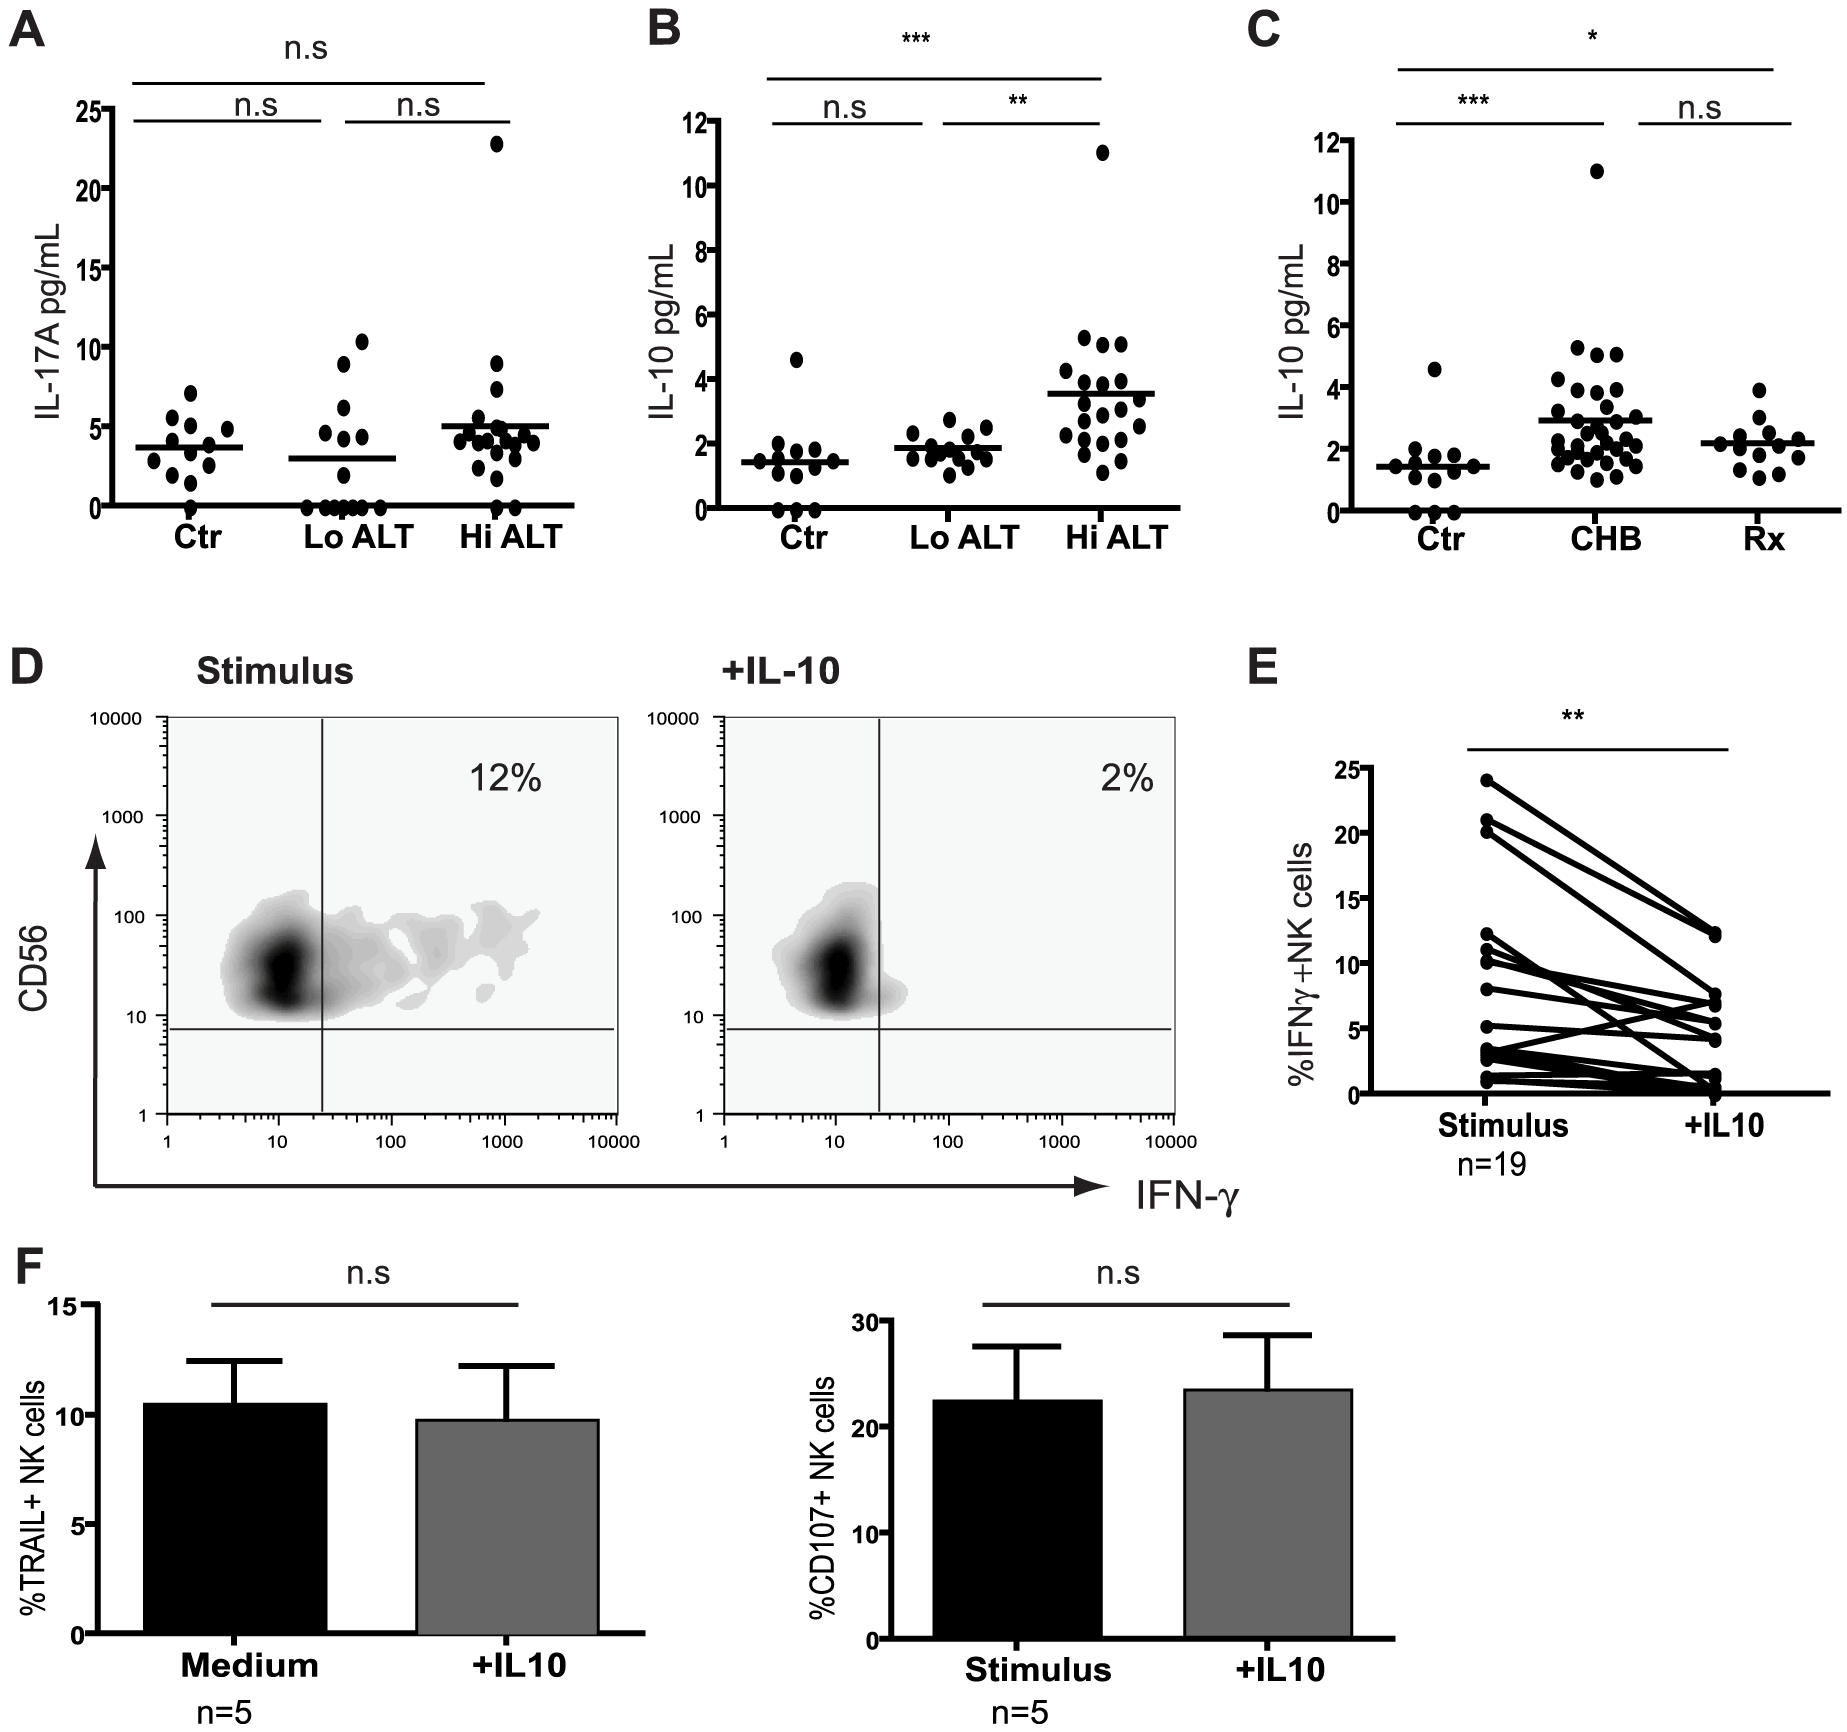 IL-10 is elevated in CHB and suppresses NK cell IFN-γ production.